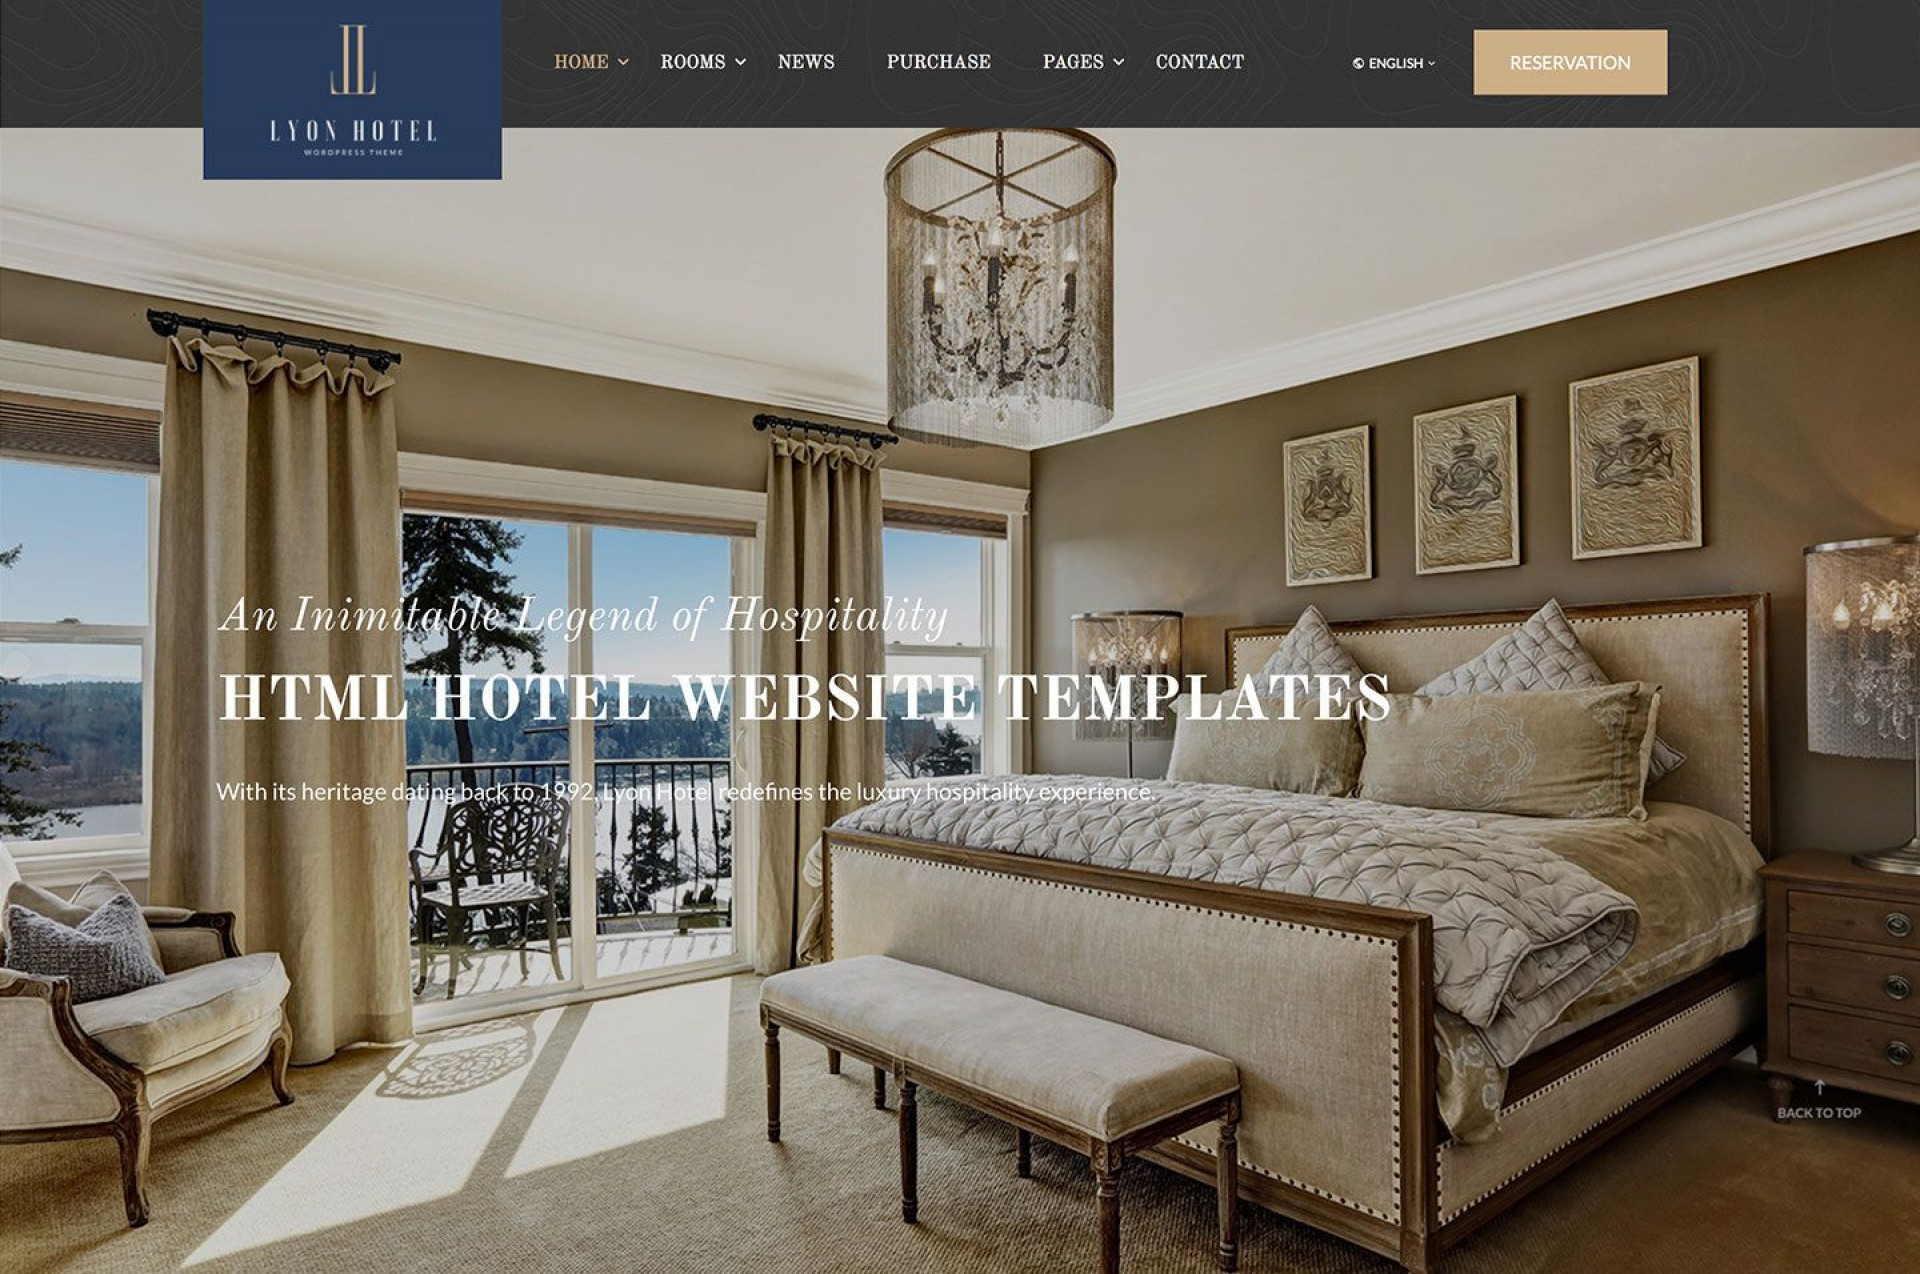 002 Wondrou Hotel Website Template Html Free Download Photo  With Cs Responsive Jquery And Restaurant1920